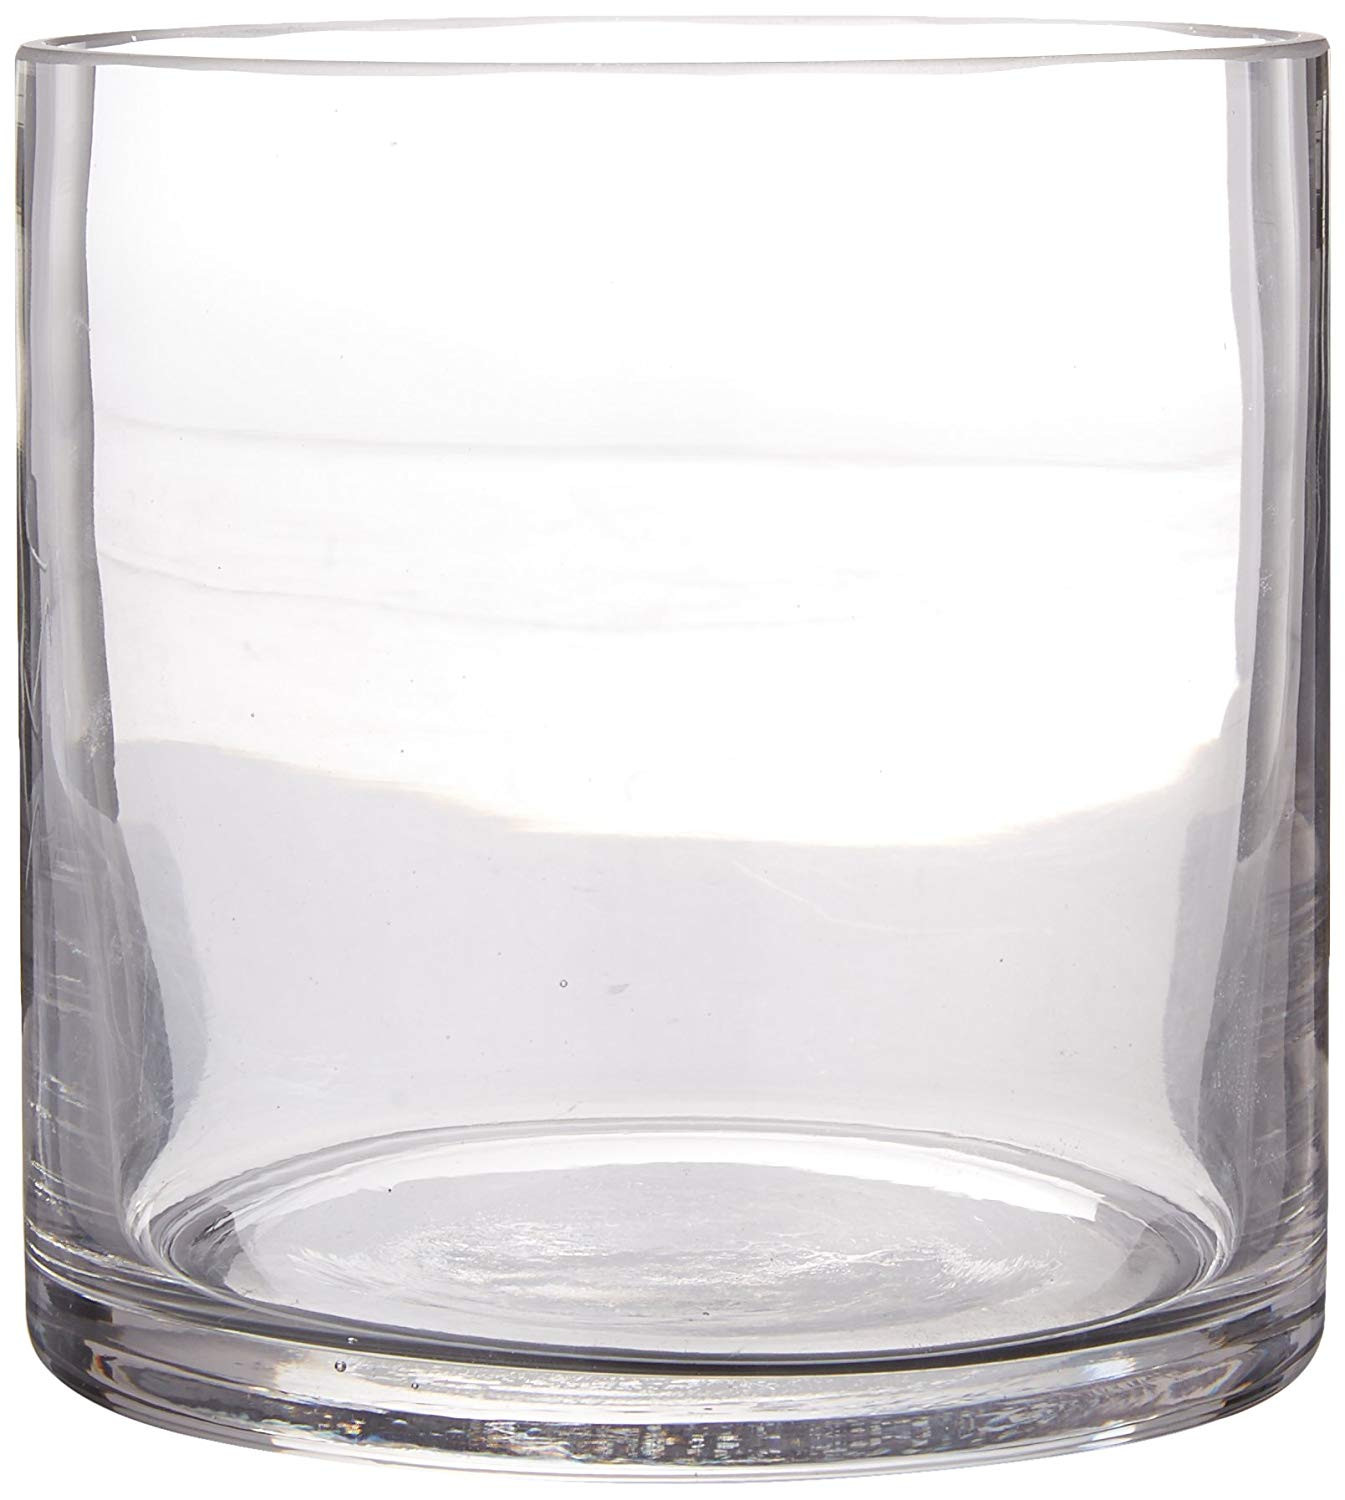 5 inch tall cylinder glass vases of amazon com couronne company 7250 large cylinder glass vase 67 6 oz intended for amazon com couronne company 7250 large cylinder glass vase 67 6 oz capacity home kitchen